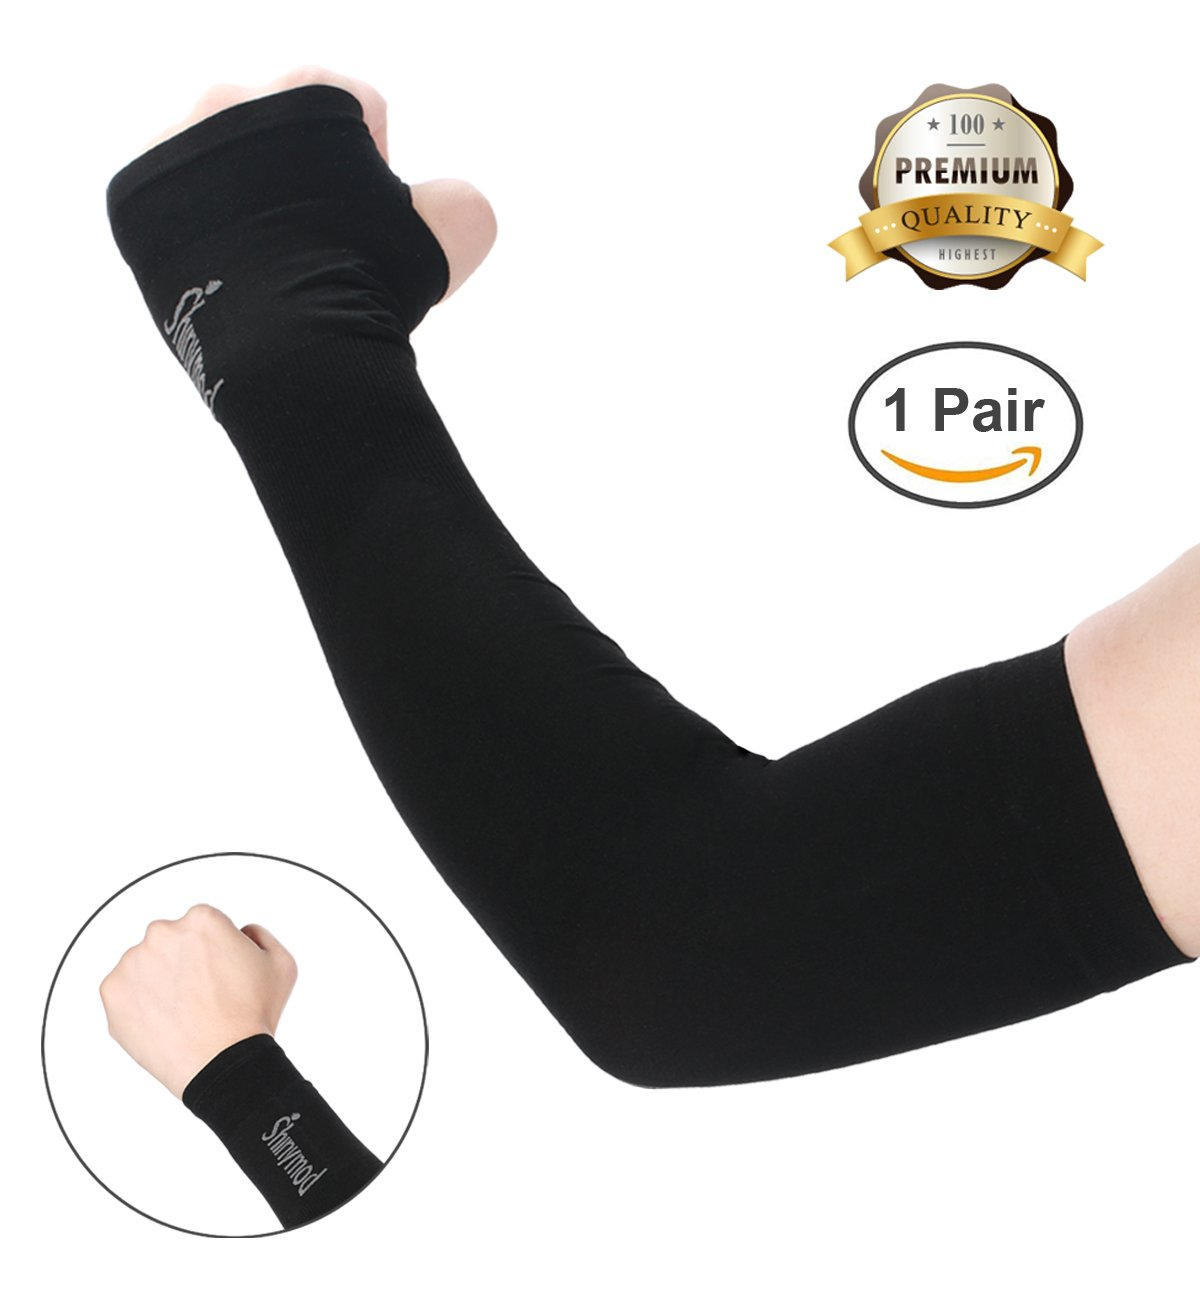 UV Protection Cooling Arm Sleeves Men Women Sunblock Cooler Protective White Lot